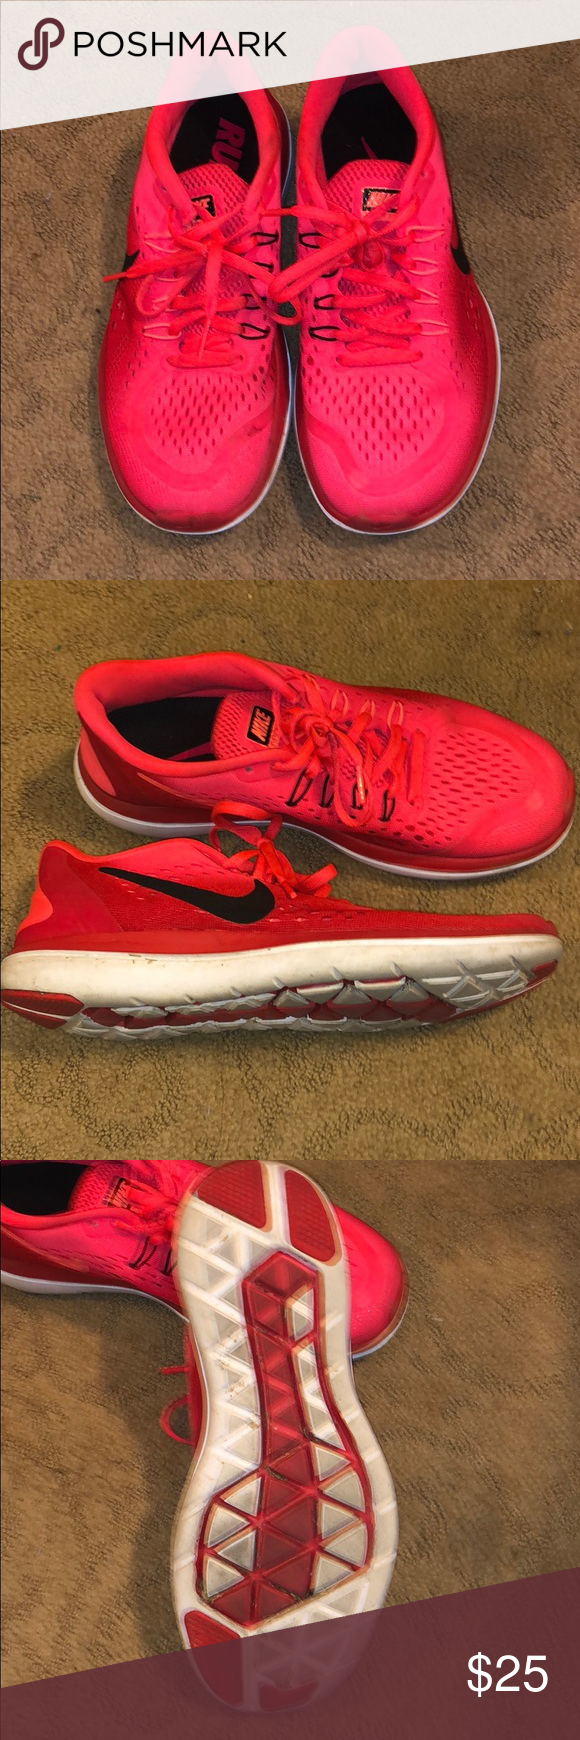 Nike running shoes bright neon red pink